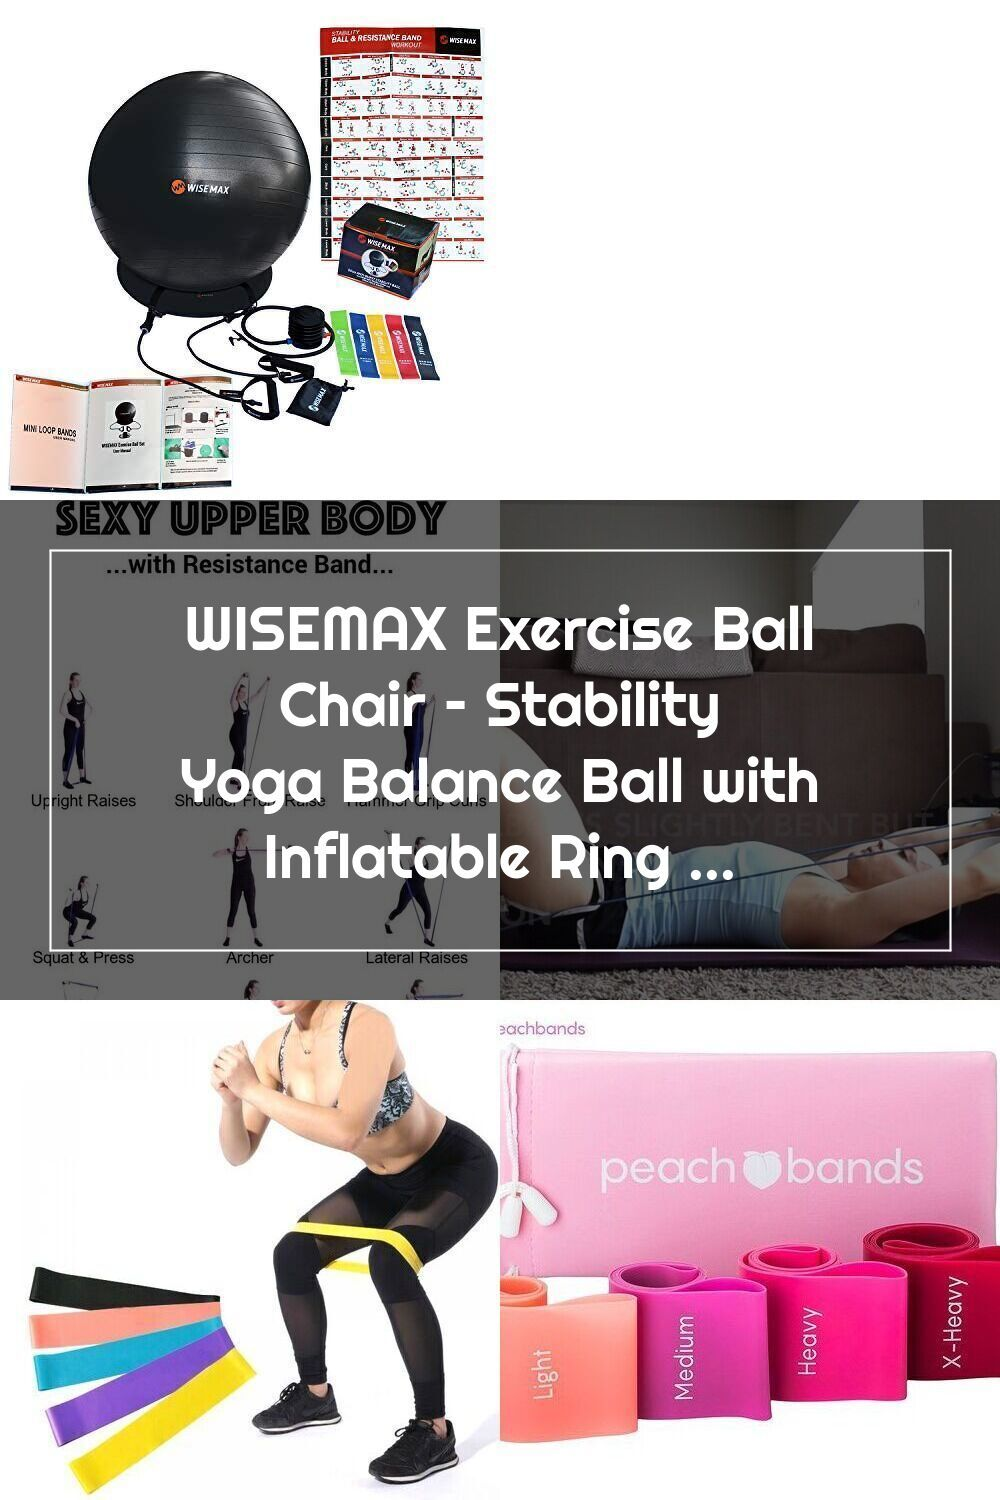 WISEMAX Exercise Ball Chair Stability Yoga Balance Ball